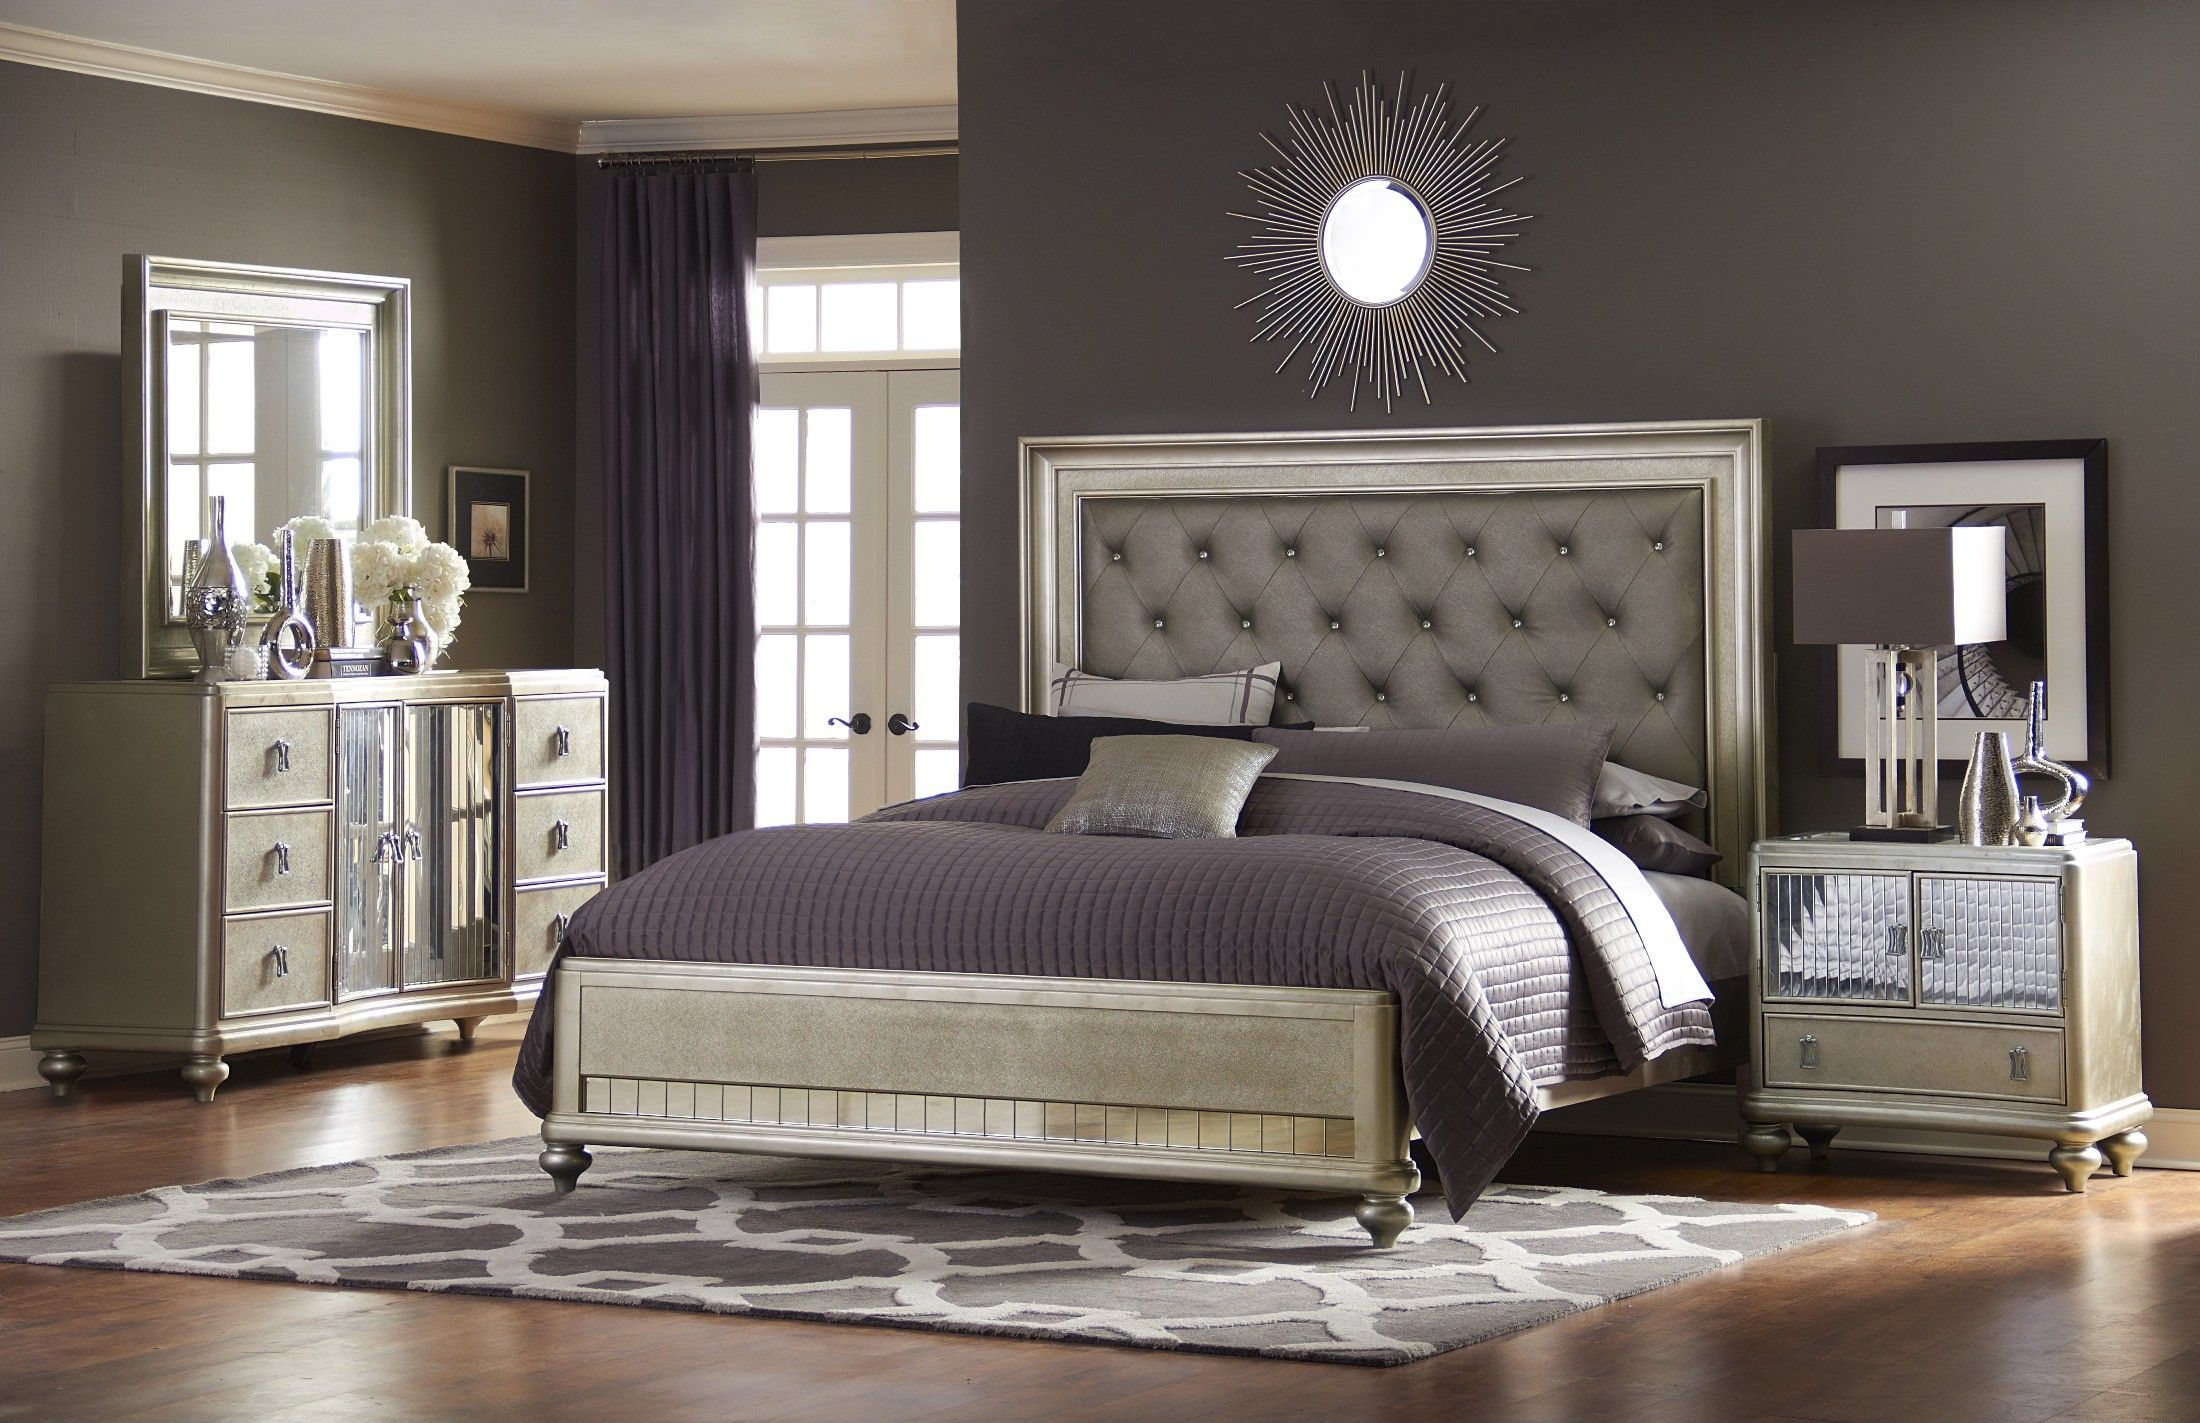 Platinum Platform Bedroom Set, 8-8-8-8, Samuel Lawrence